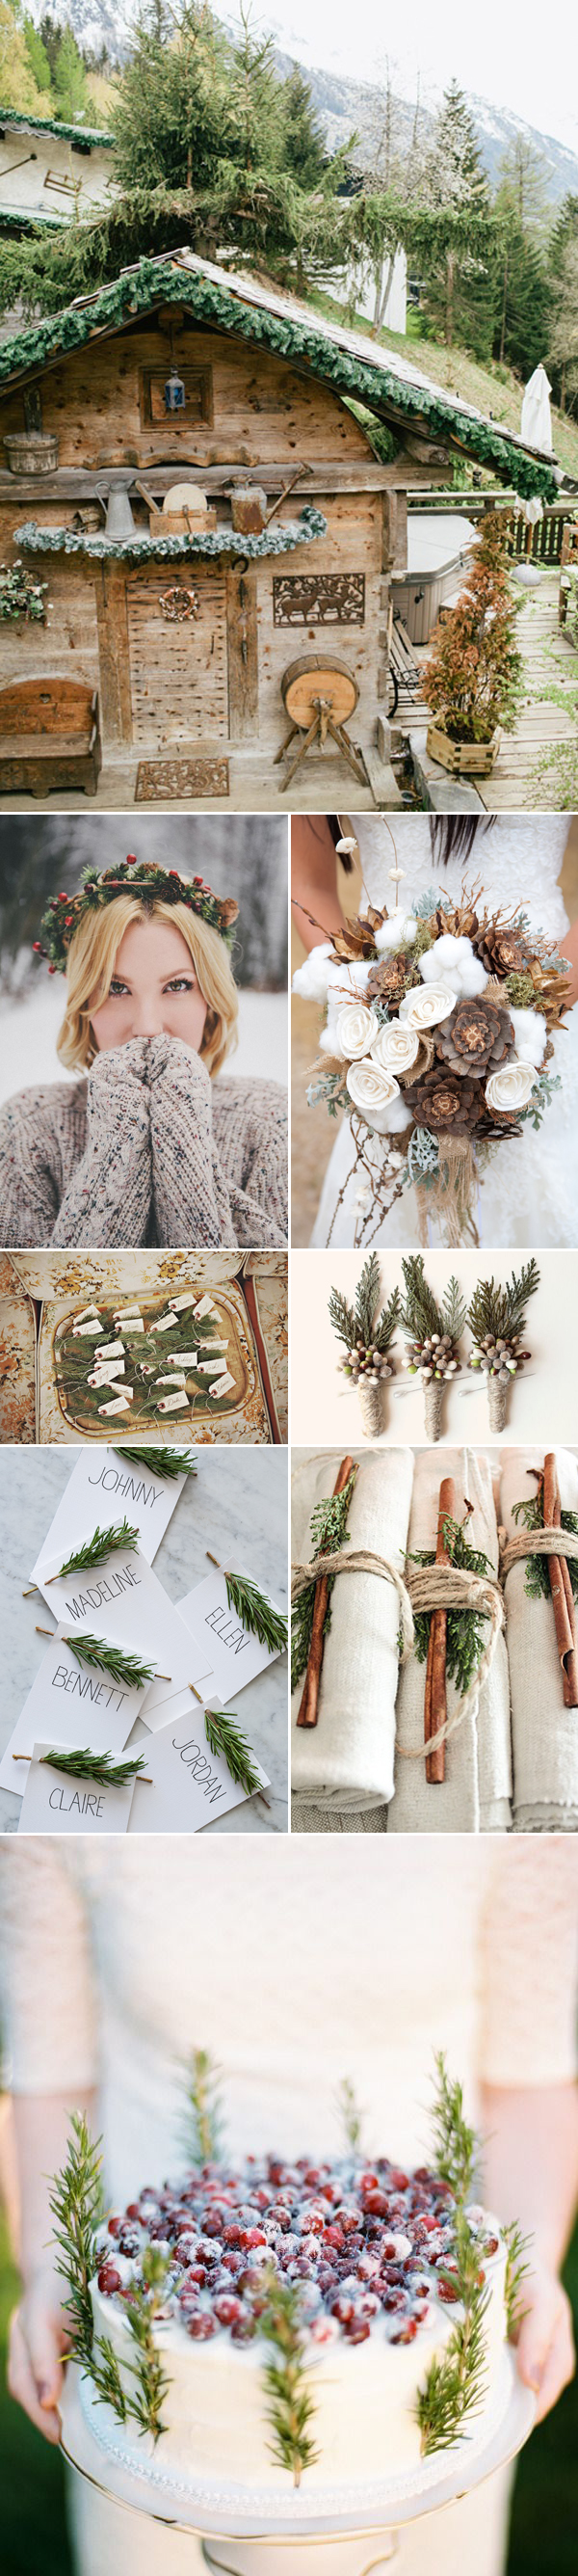 How To Choose Your Wedding Color Palette Junebug Weddings